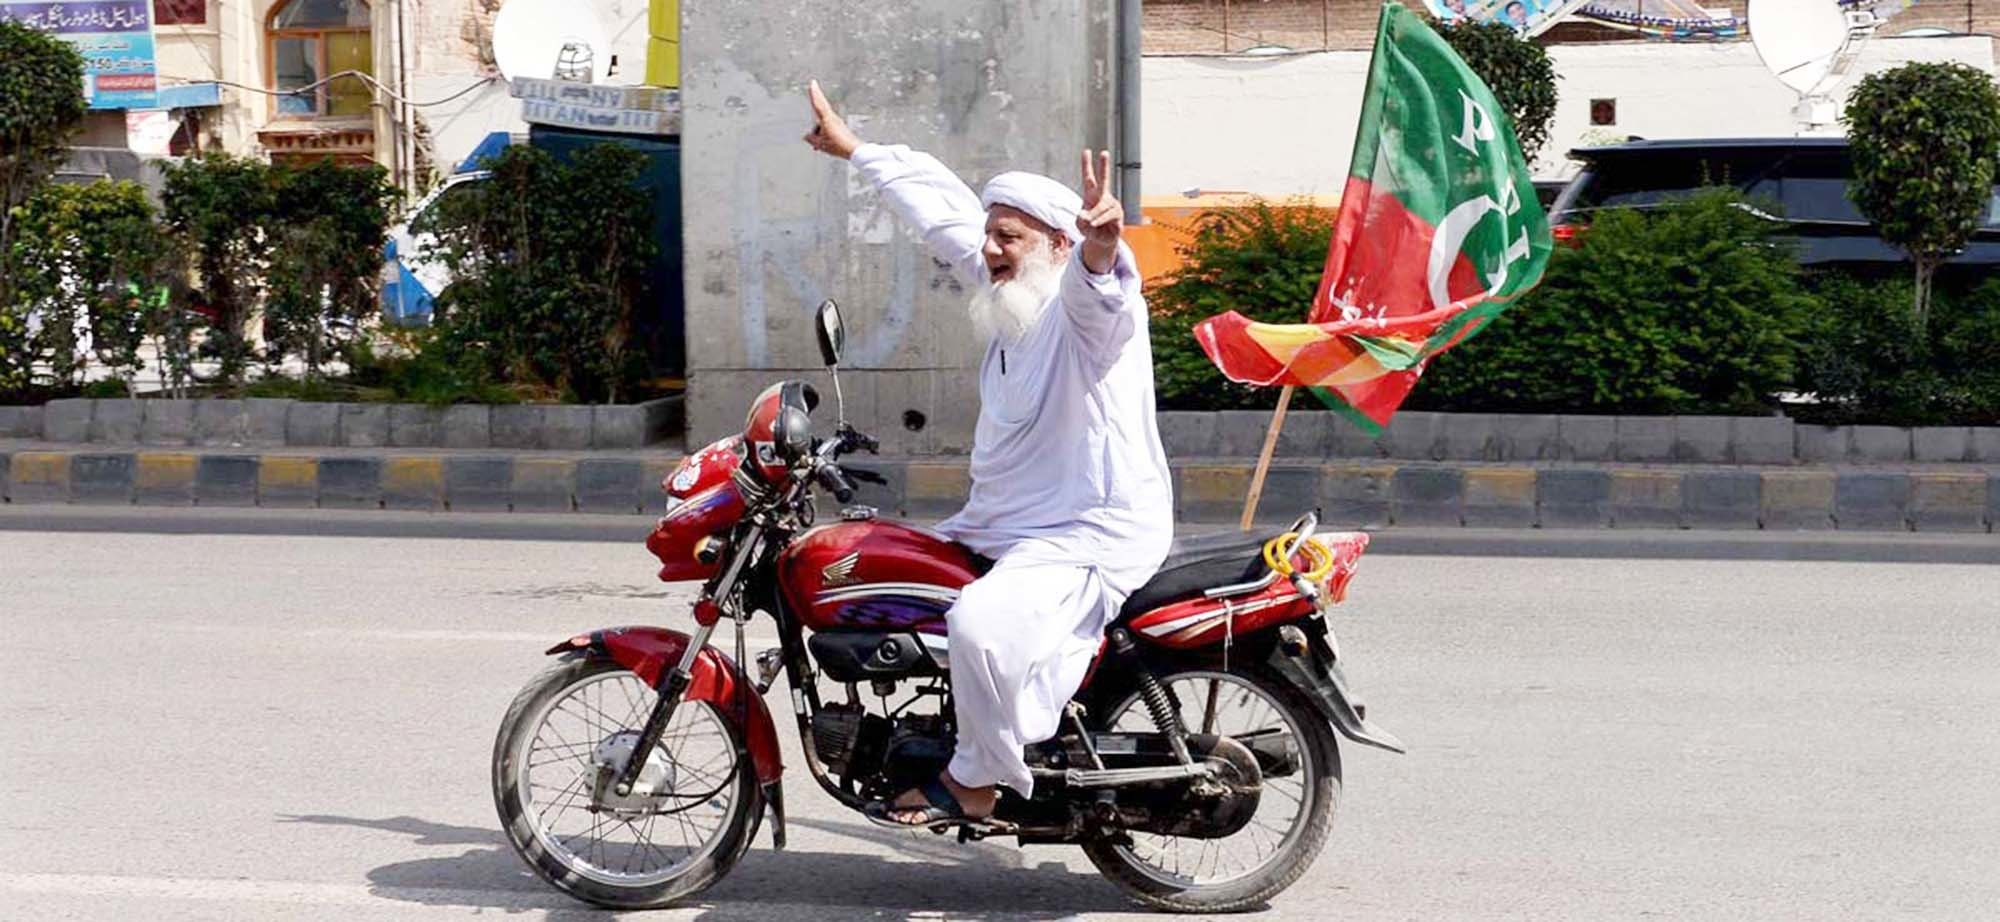 APP35-14 RAWALPINDI: October 14 – An elderly person on the way on his motorcycle with political party flag during by-election. APP photo by Abid Zia  —